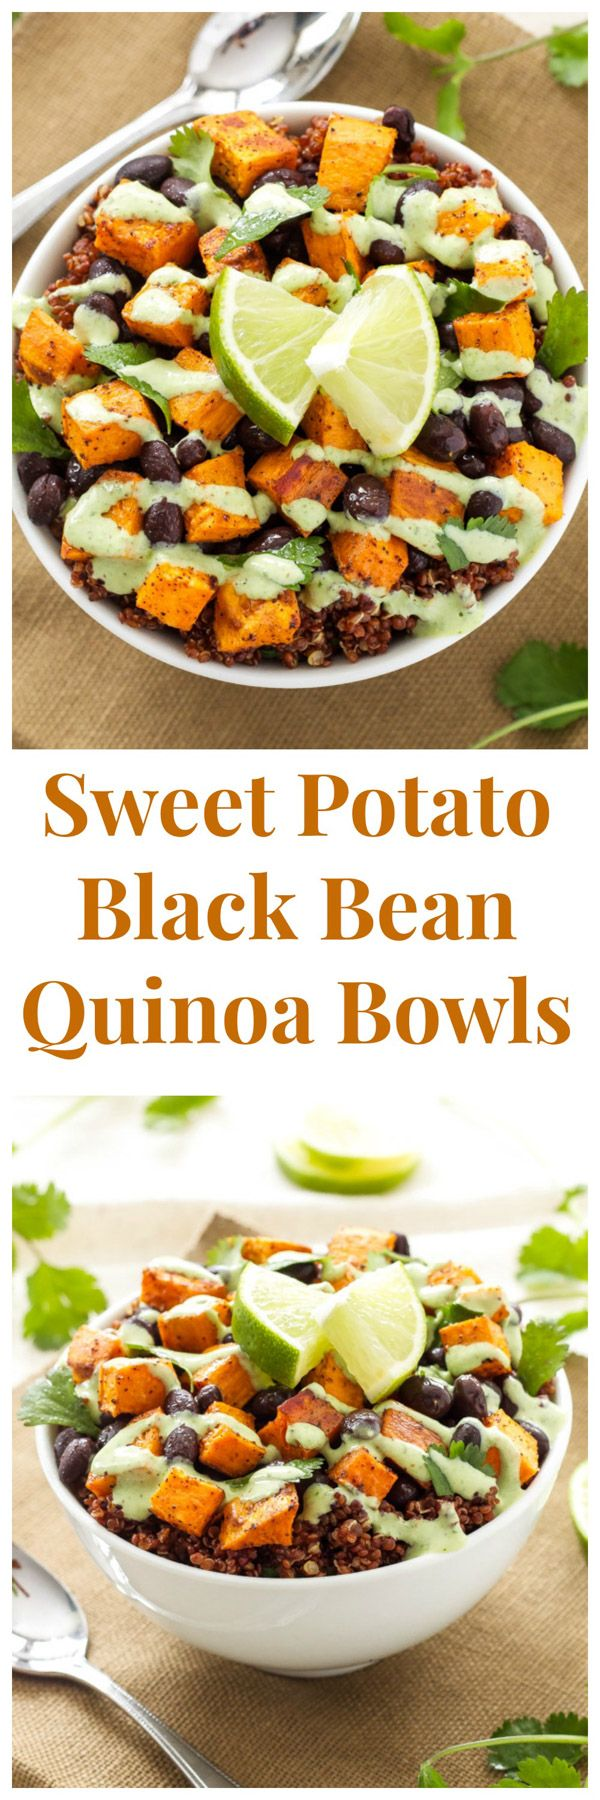 Sweet Potato and Black Bean Quinoa Bowls #vegetarian #veggiebowls #sweetpotatorecipes